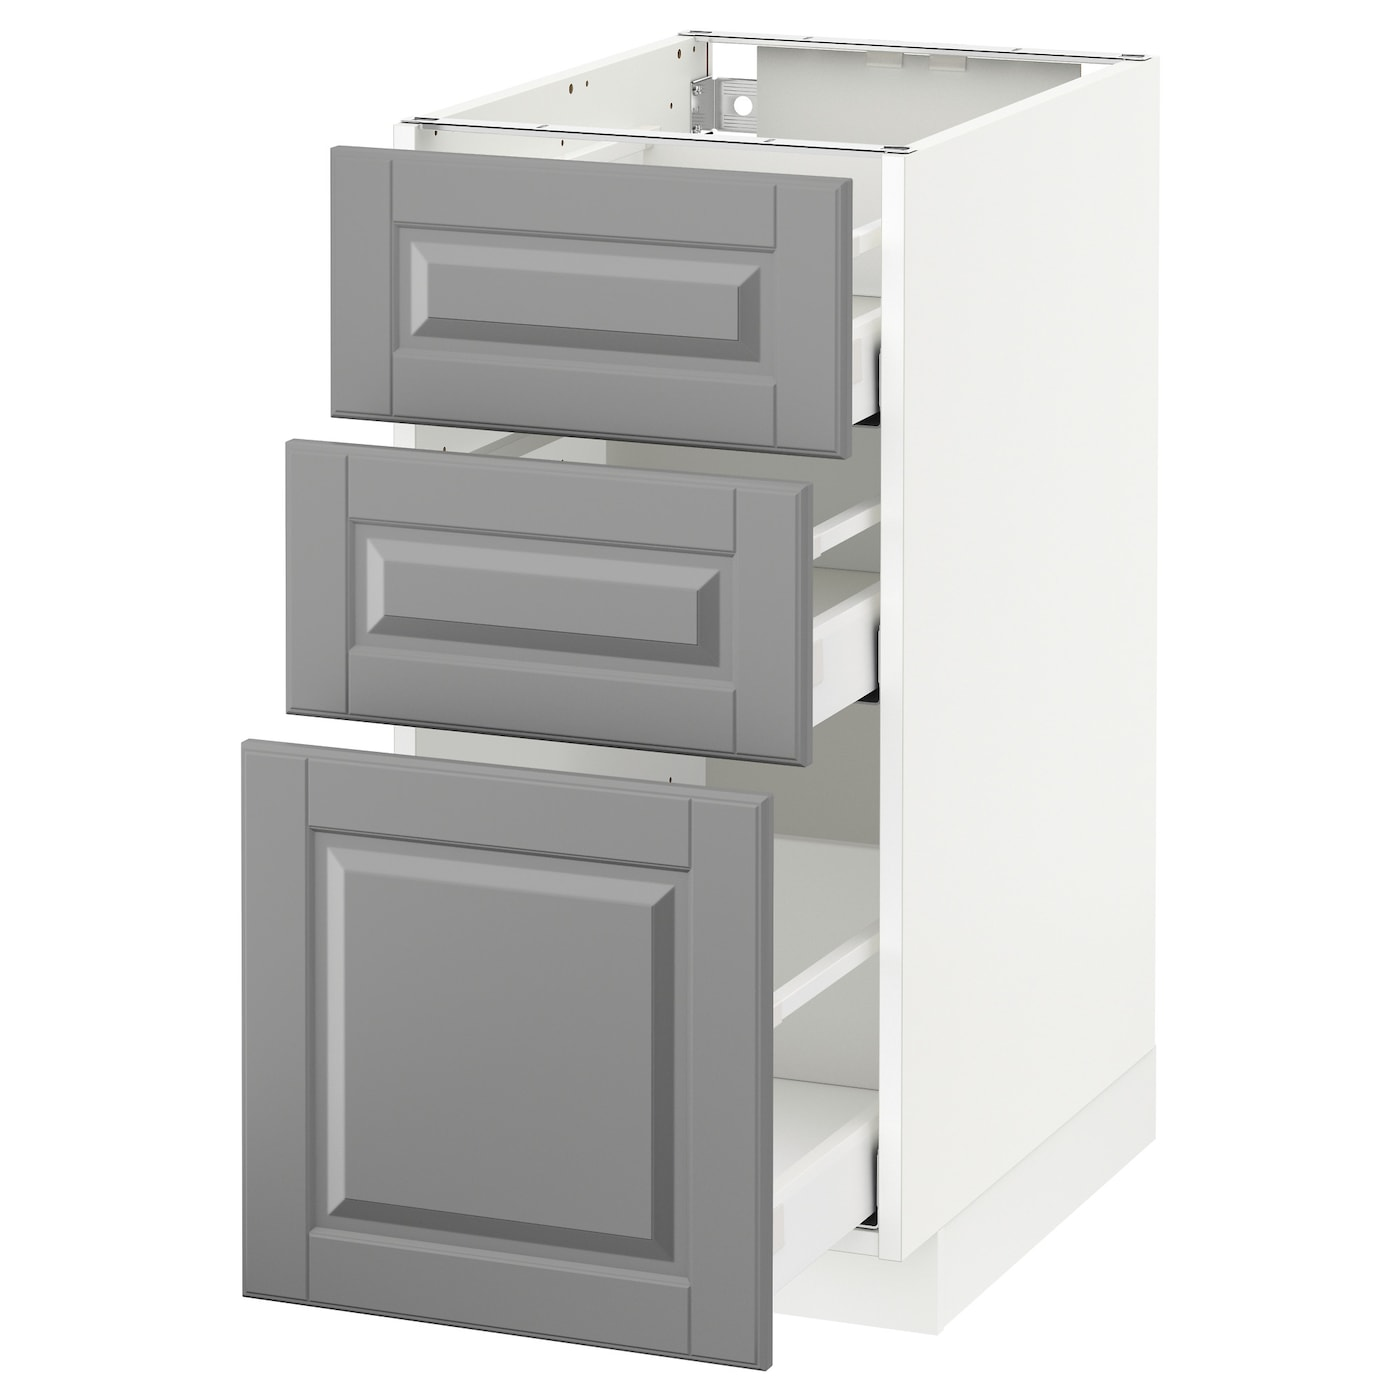 Metod maximera base cabinet with 3 drawers white bodbyn for Kitchen cabinets and drawers